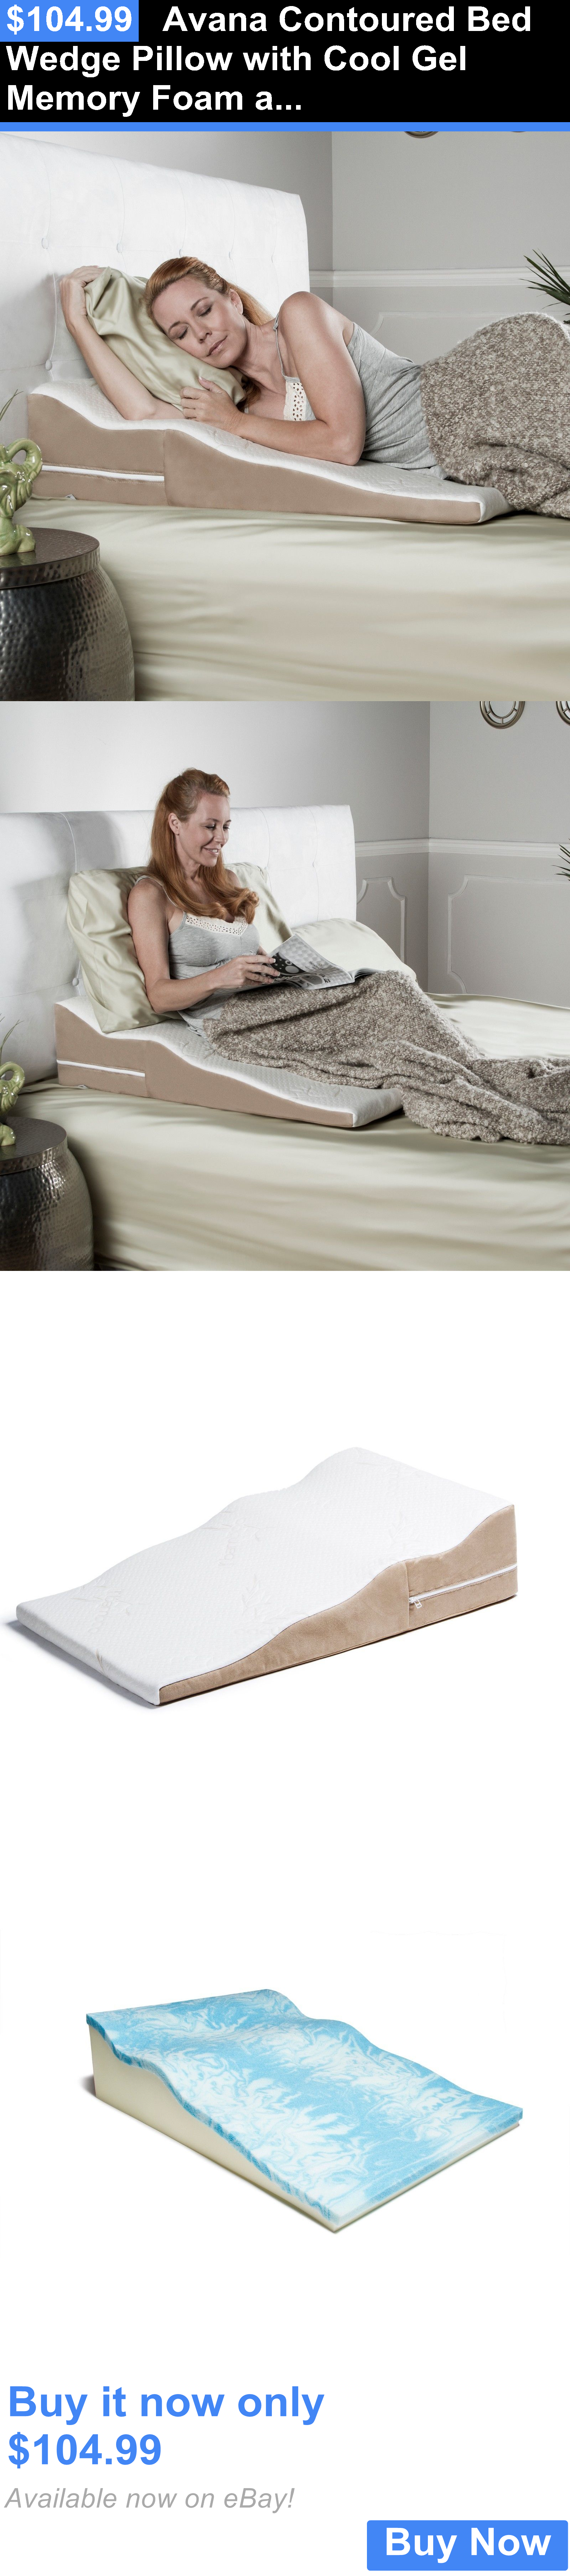 acid pillow orthopedic in up you reflux lumbar shams european memory under fur pain foam sleeping mattress sleepers side wedge back reading bedroom neck tempur prop for pillows bed triangle legs rest that